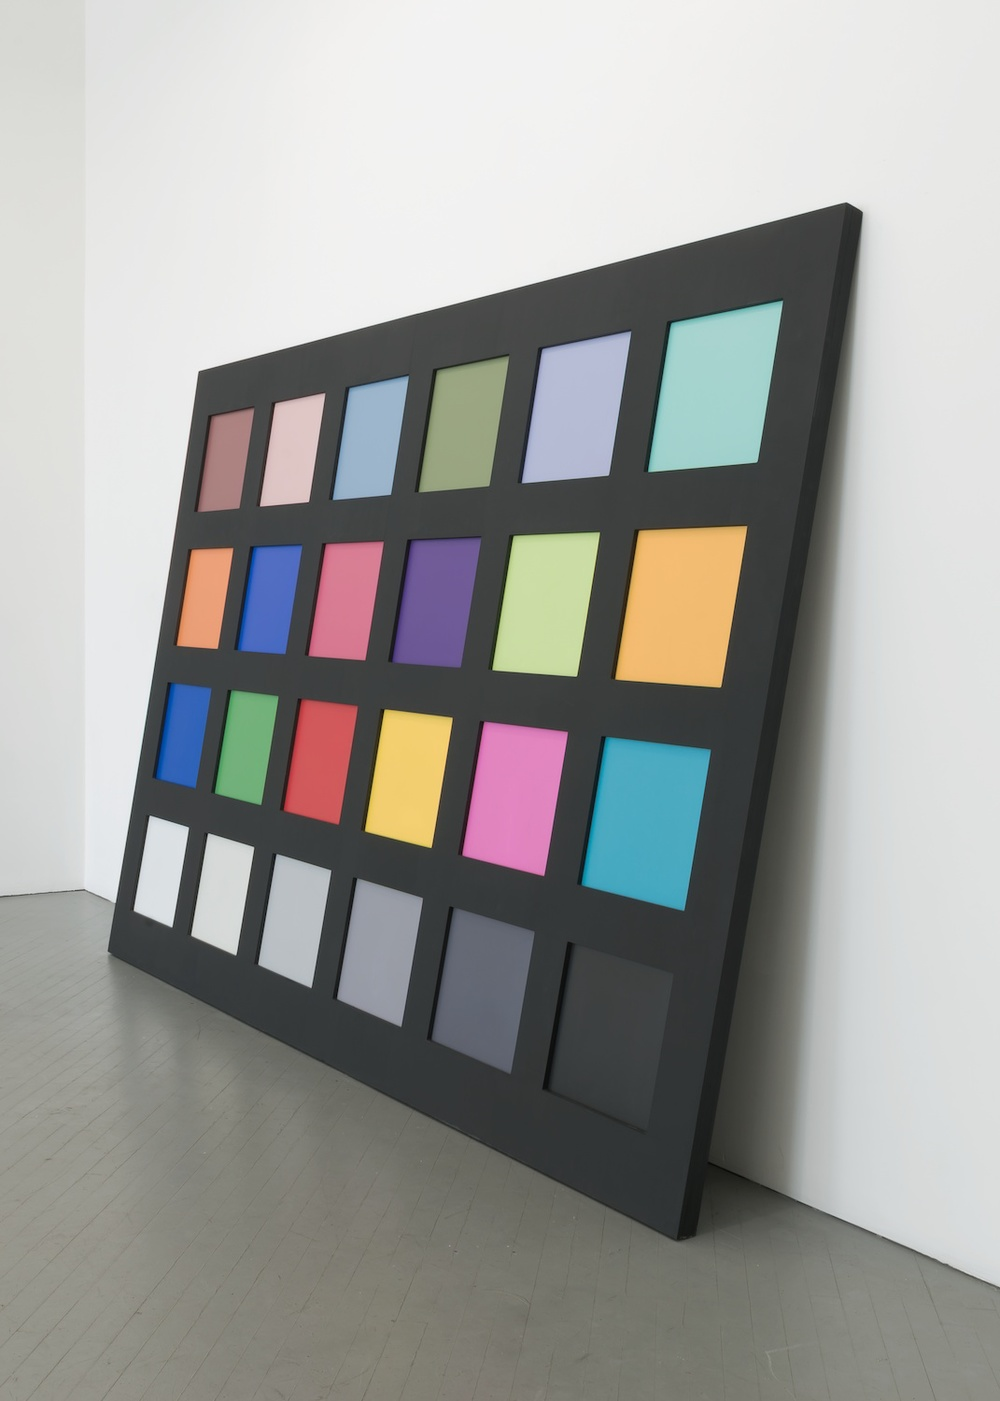 Amanda Ross-Ho  Color Calibration Card  (Artifact from THE CHARACTER AND SHAPE OF ILLUMINATED THINGS) 2013 Exterior MDF, aluminum, UV print on sintra, latex paint 84h x 116 ¼w x 2 ⅛d in ARH089